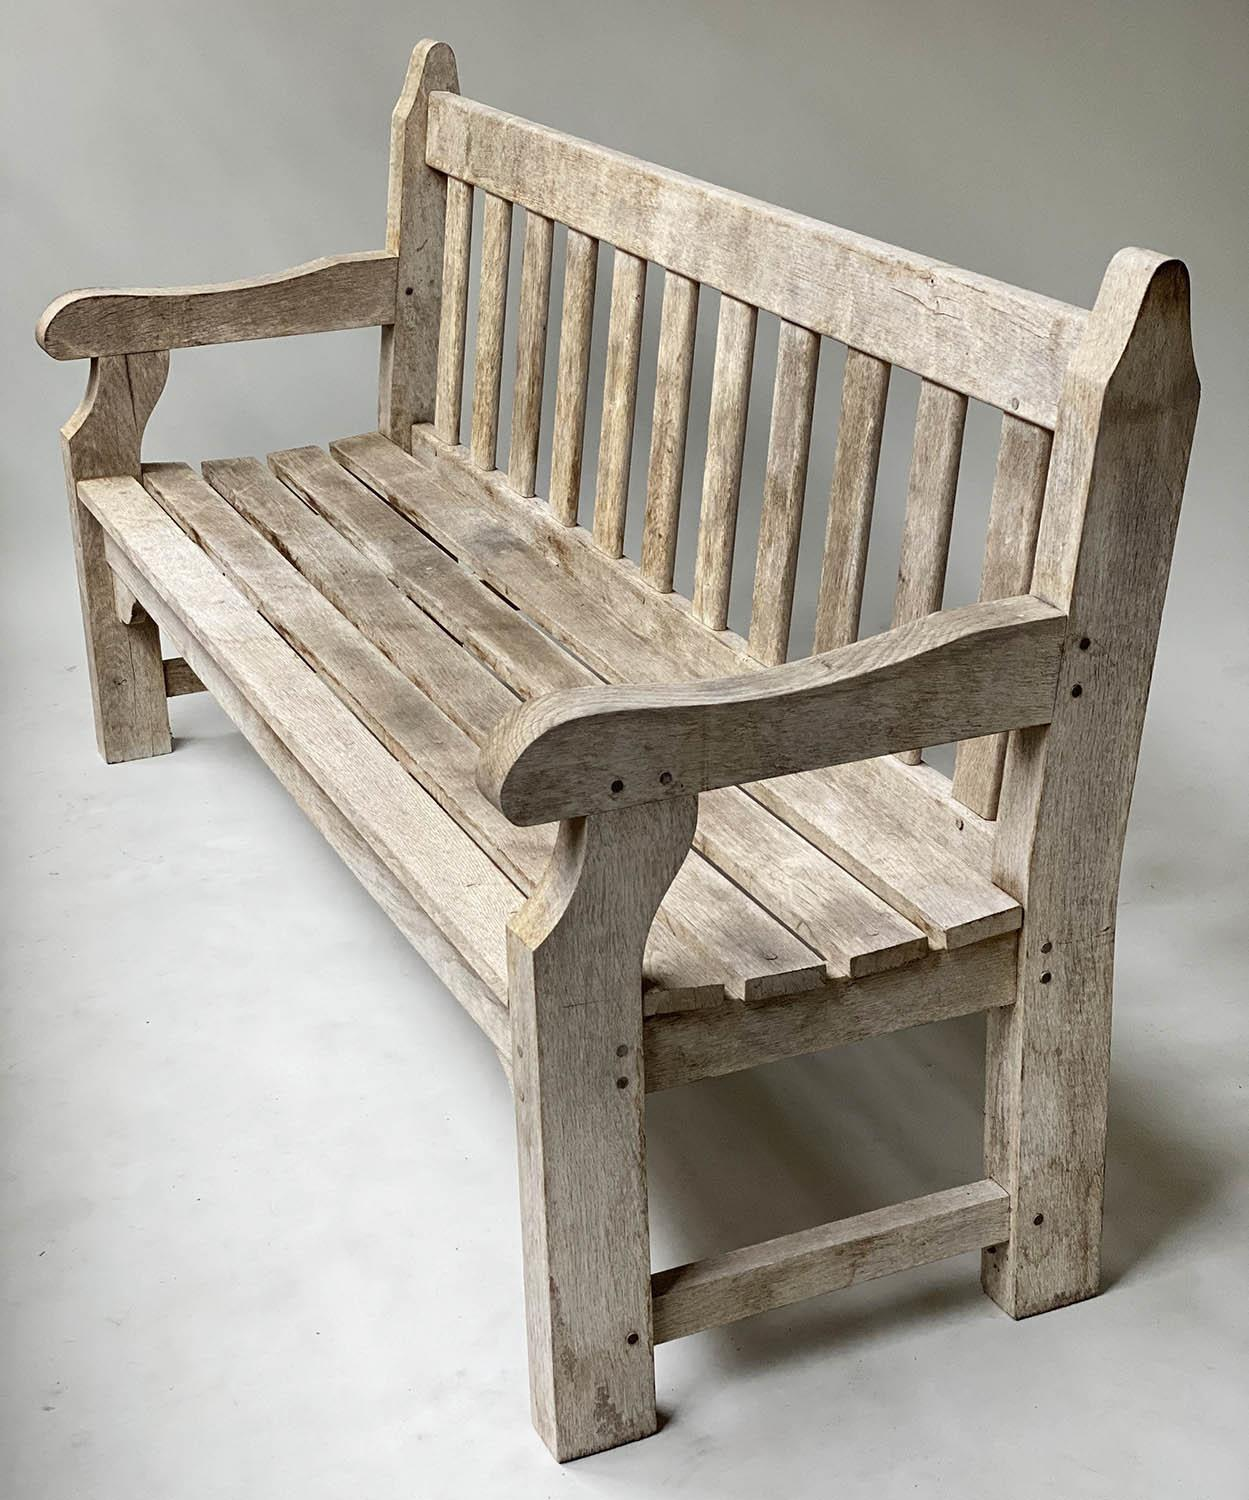 ENGLISH GARDEN BENCH, weathered English oak of substantial and slatted construction, 168cm W. - Image 5 of 8